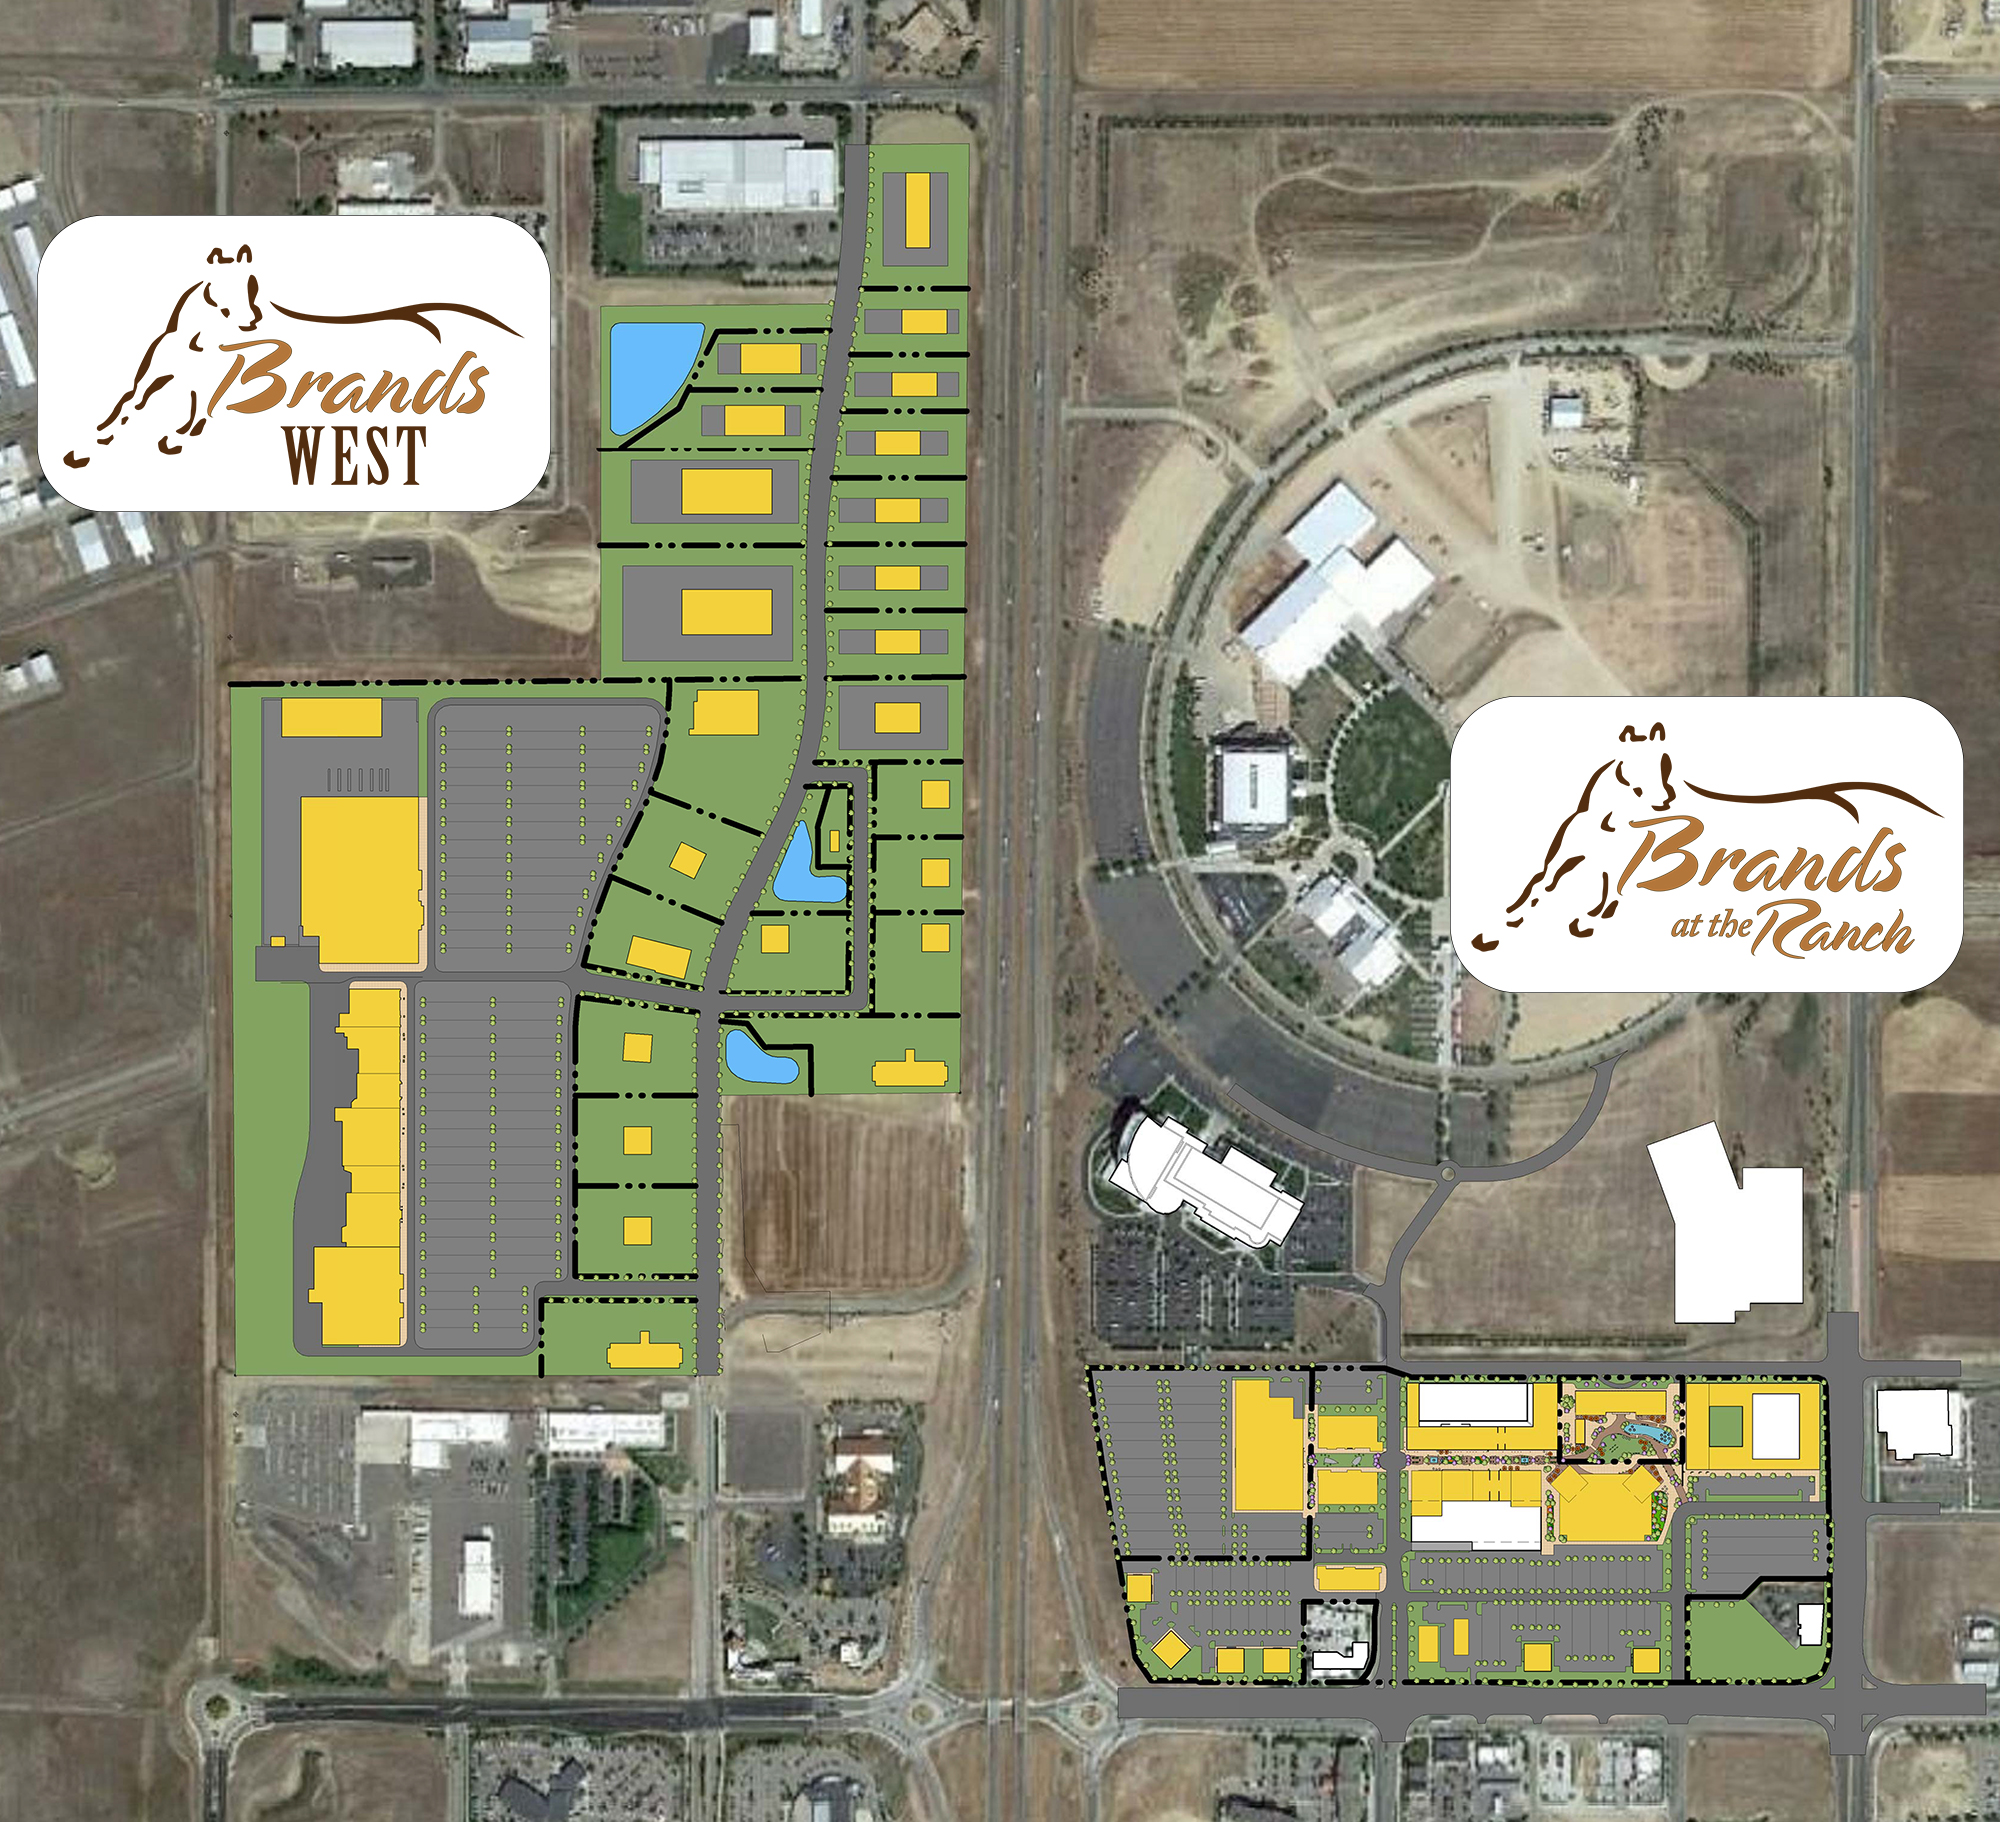 cropped_Combine Site Plan_with_logos.jpg